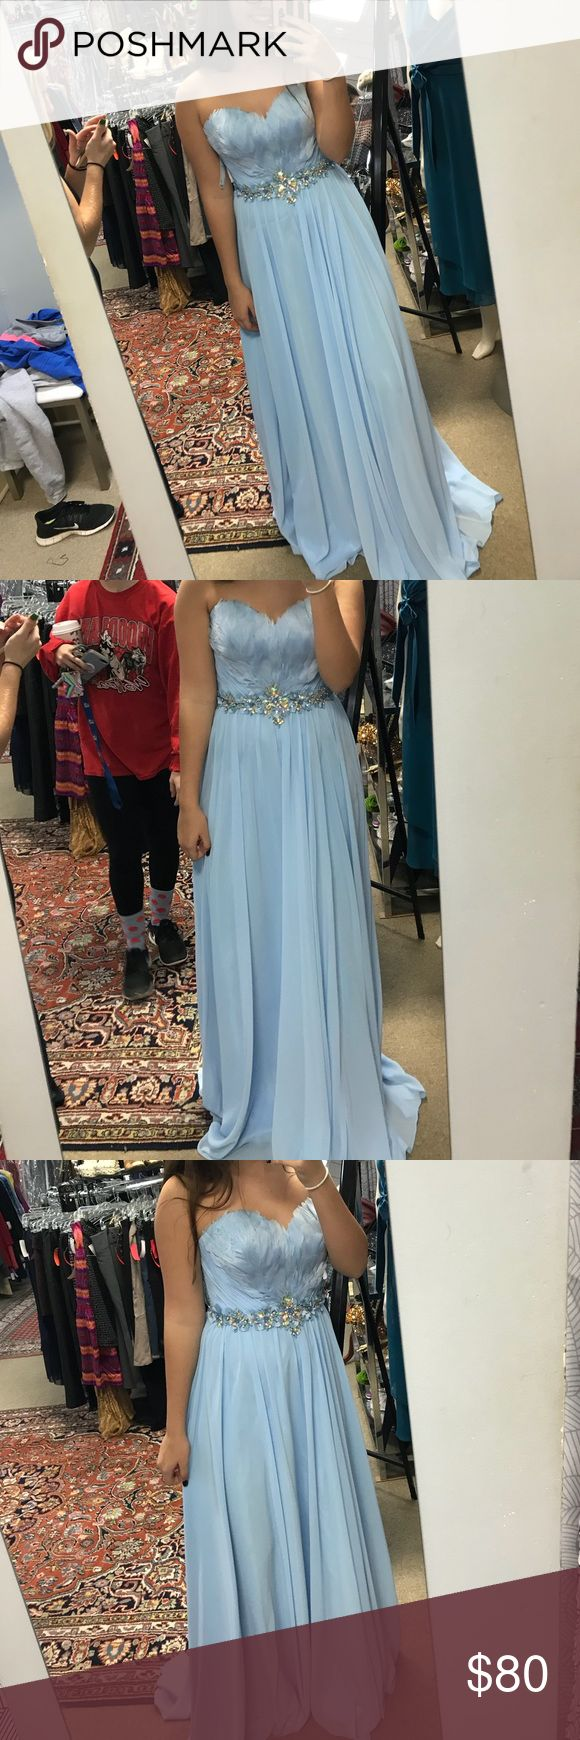 Prom dress never worn!!! it's a size 8 but i am a 4-6 in dresses 140 pounds and 5'6 and it's a little long on me but fits everywhere else perfectly! prom dress Dresses Prom